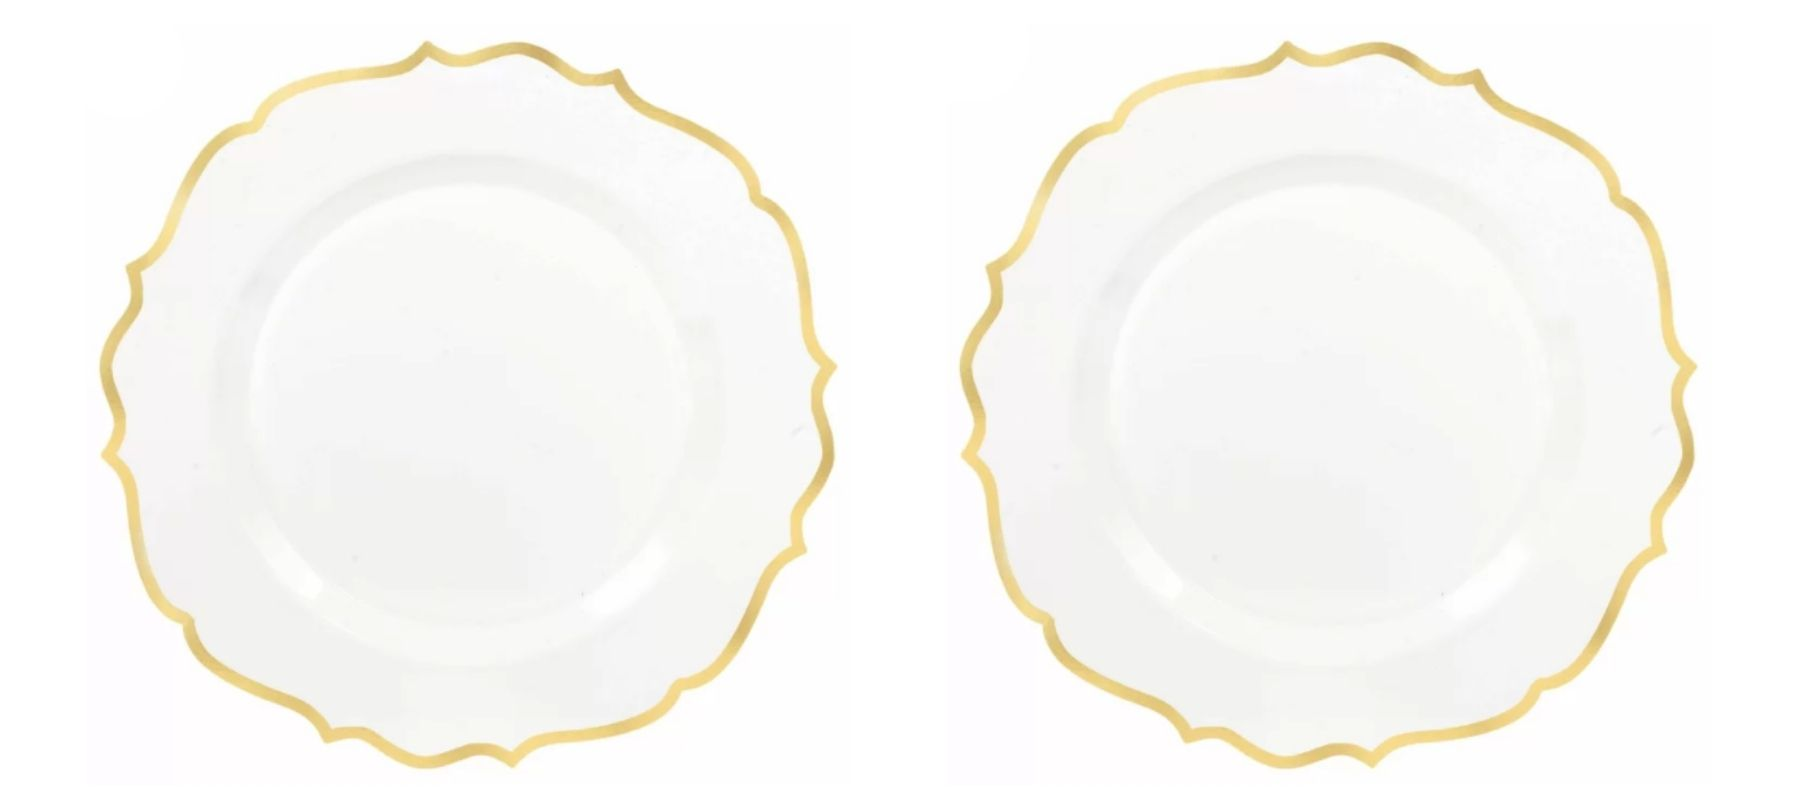 Ornate Heavy Weight Plastic Dinner Plate by Amscan - Best Disposable Plates for Wedding